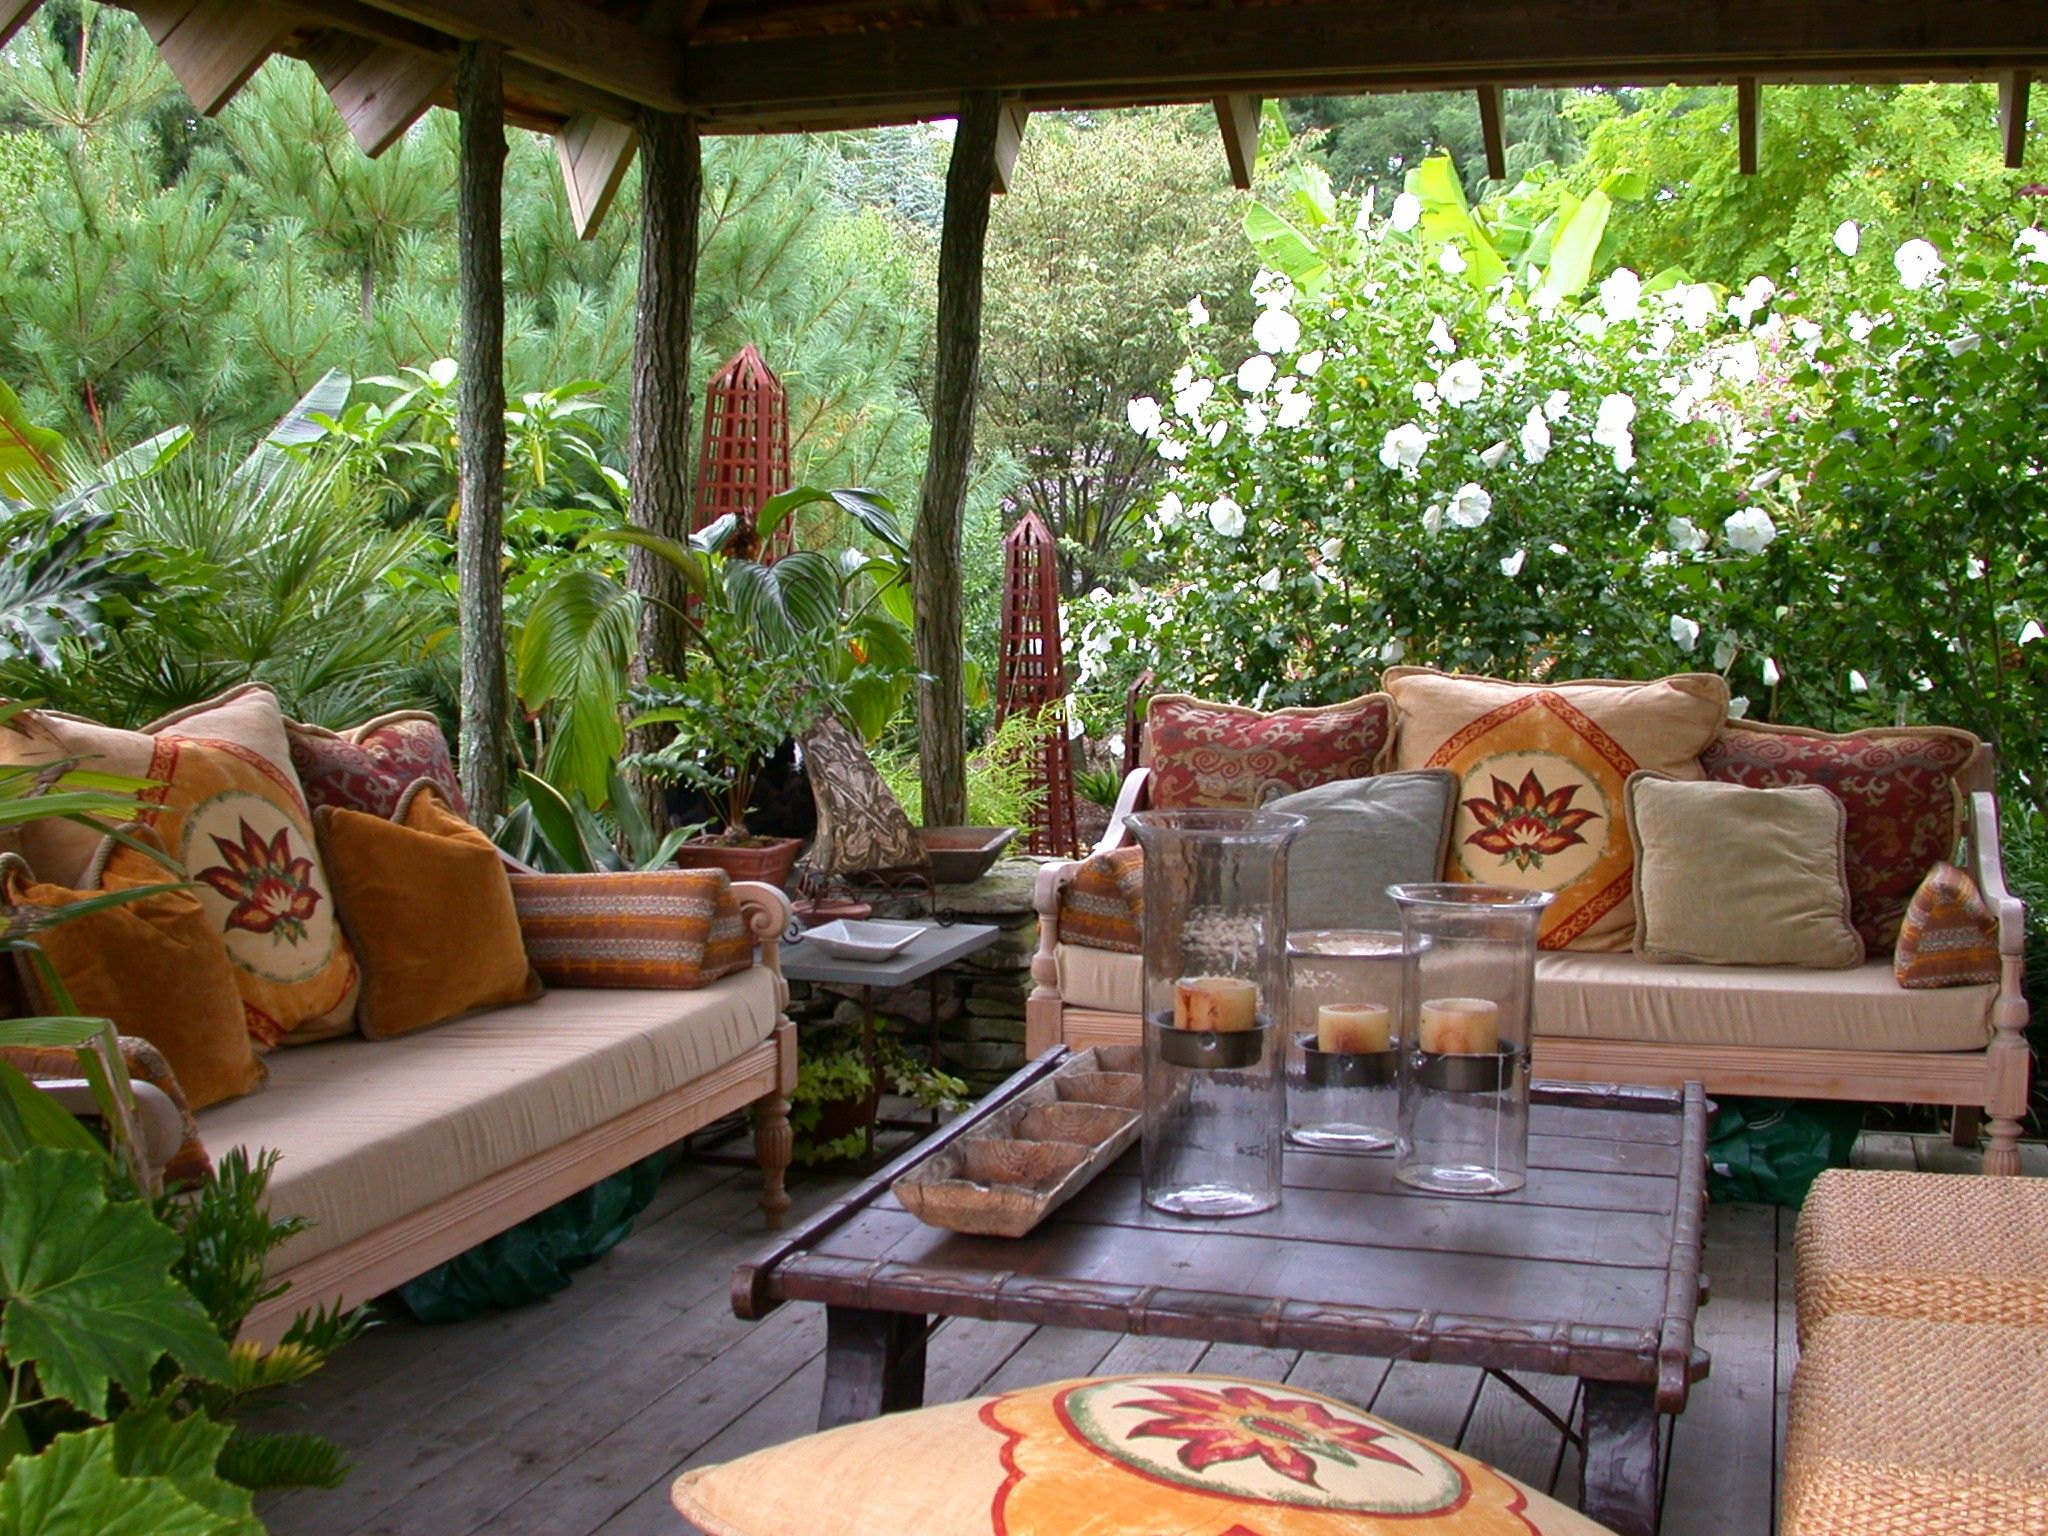 Awesome Patio Ideas On A Budget Designs